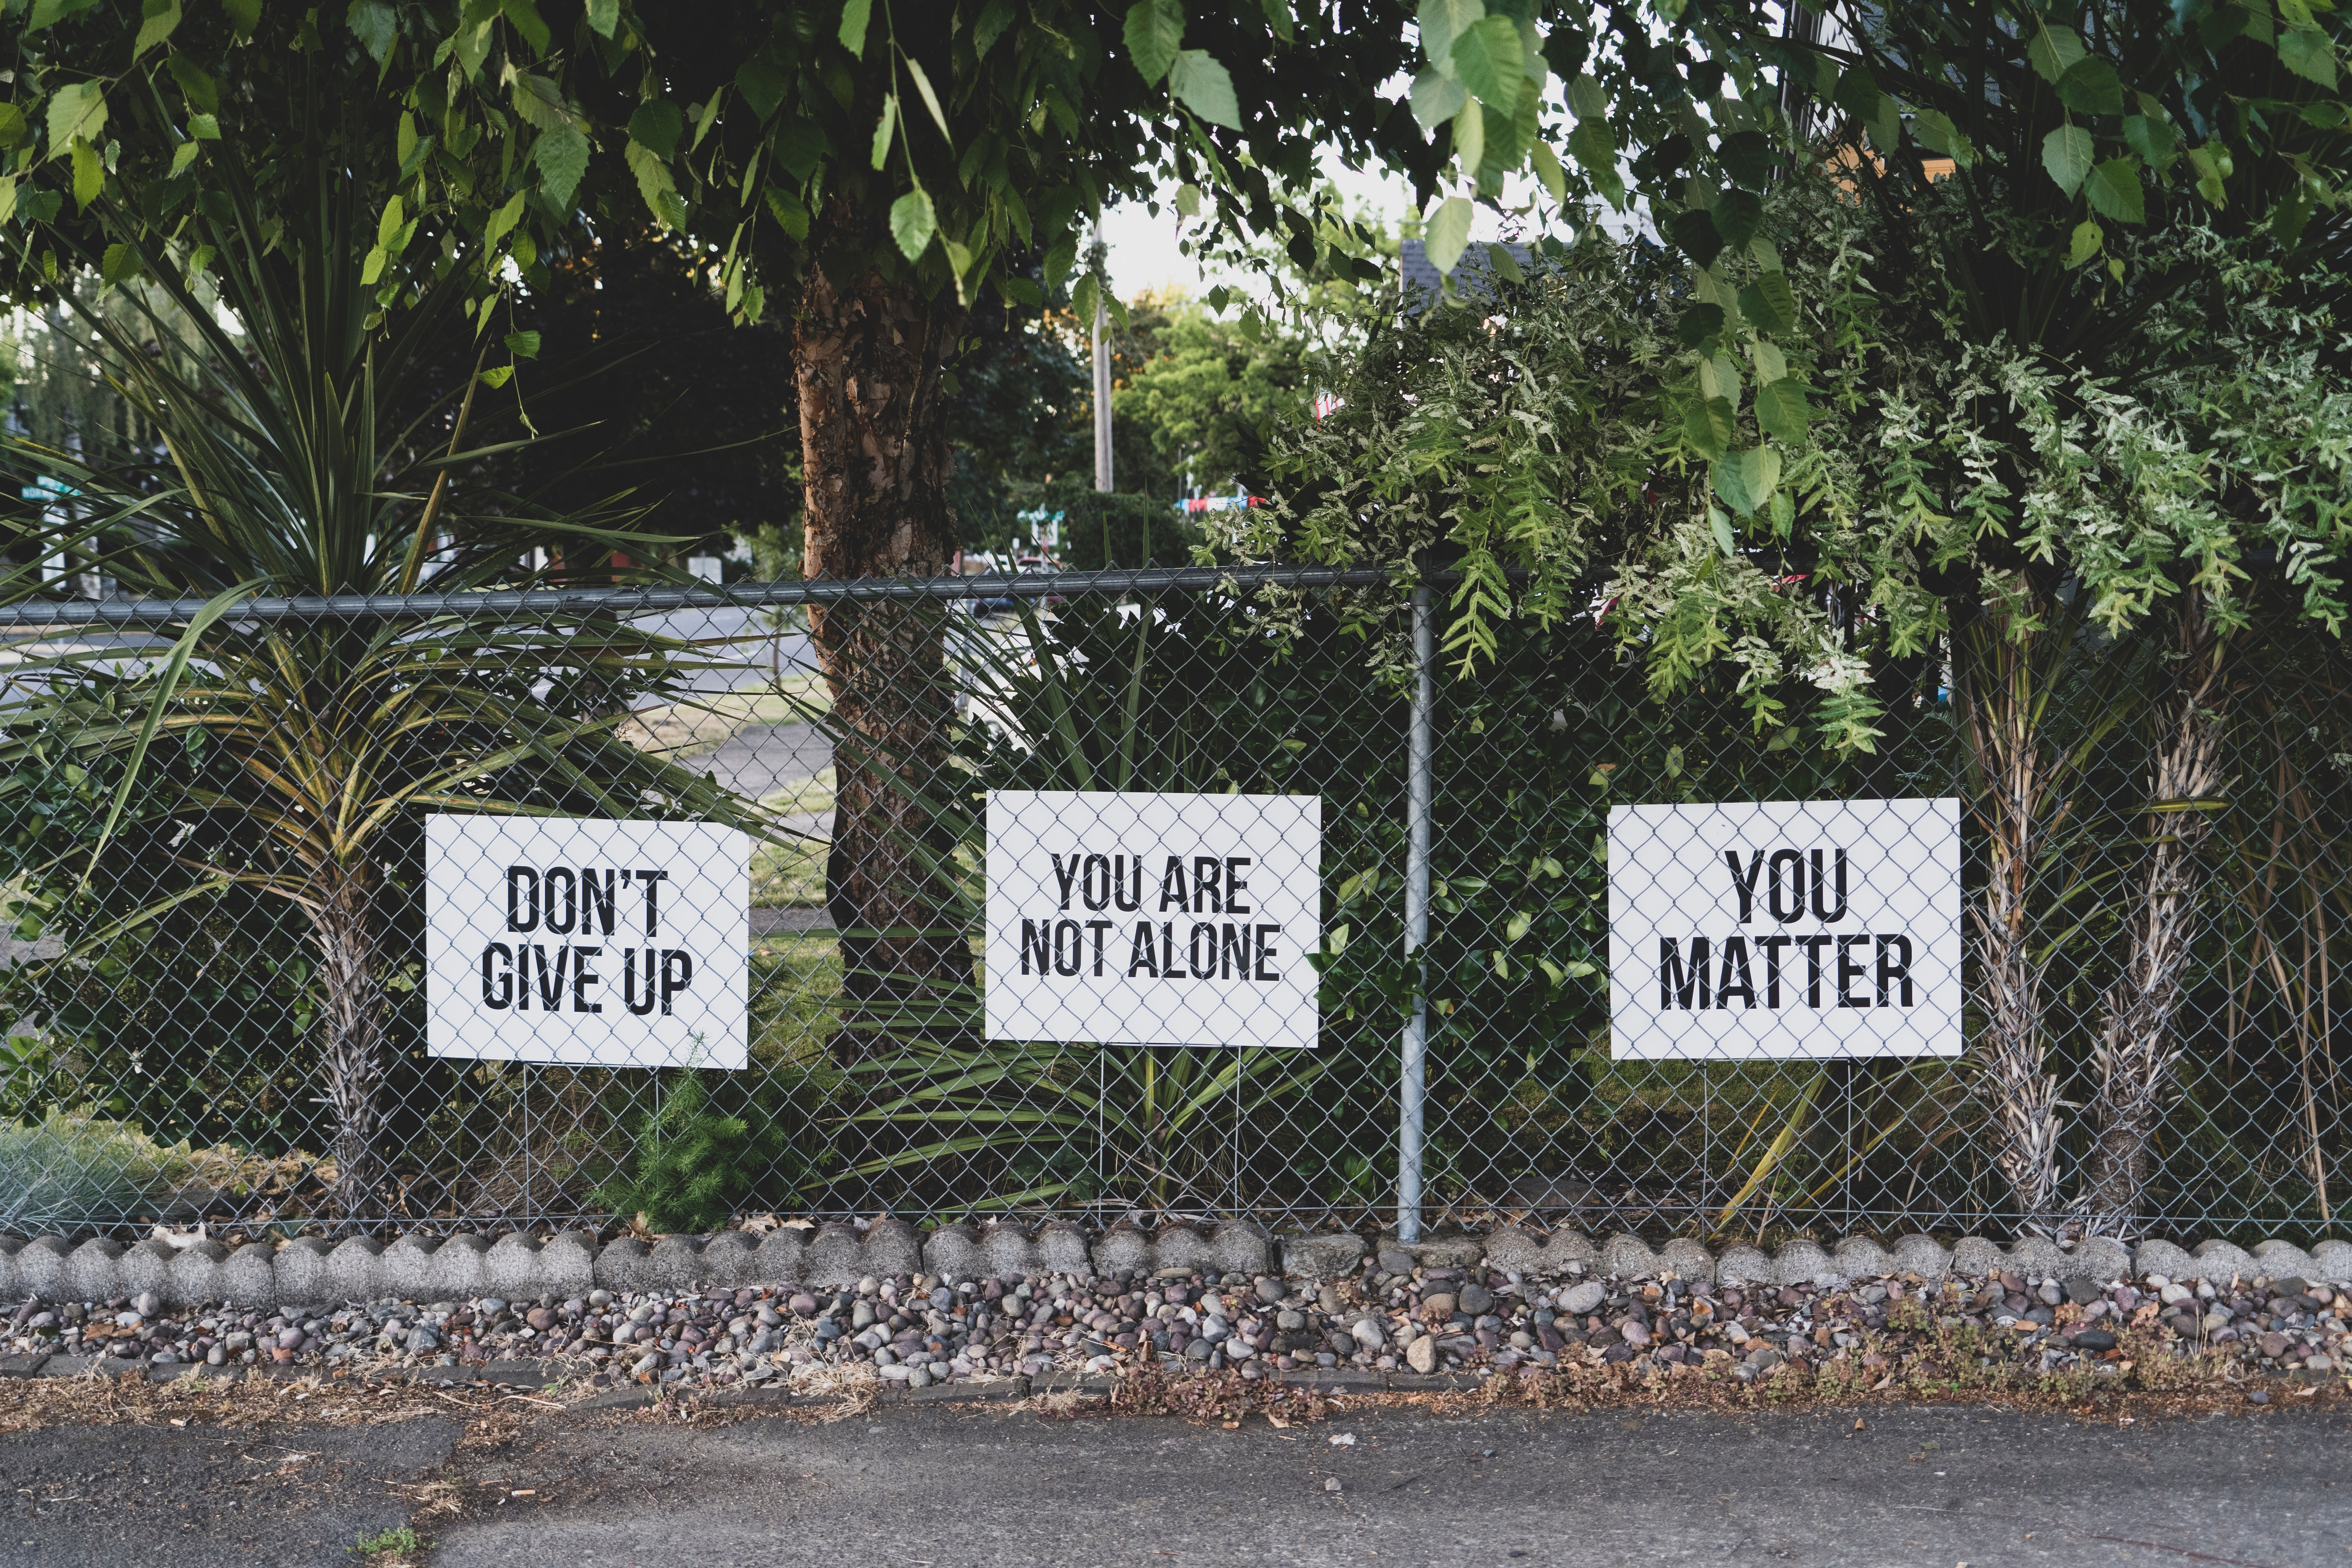 Don't give up, You are not alone, You matter